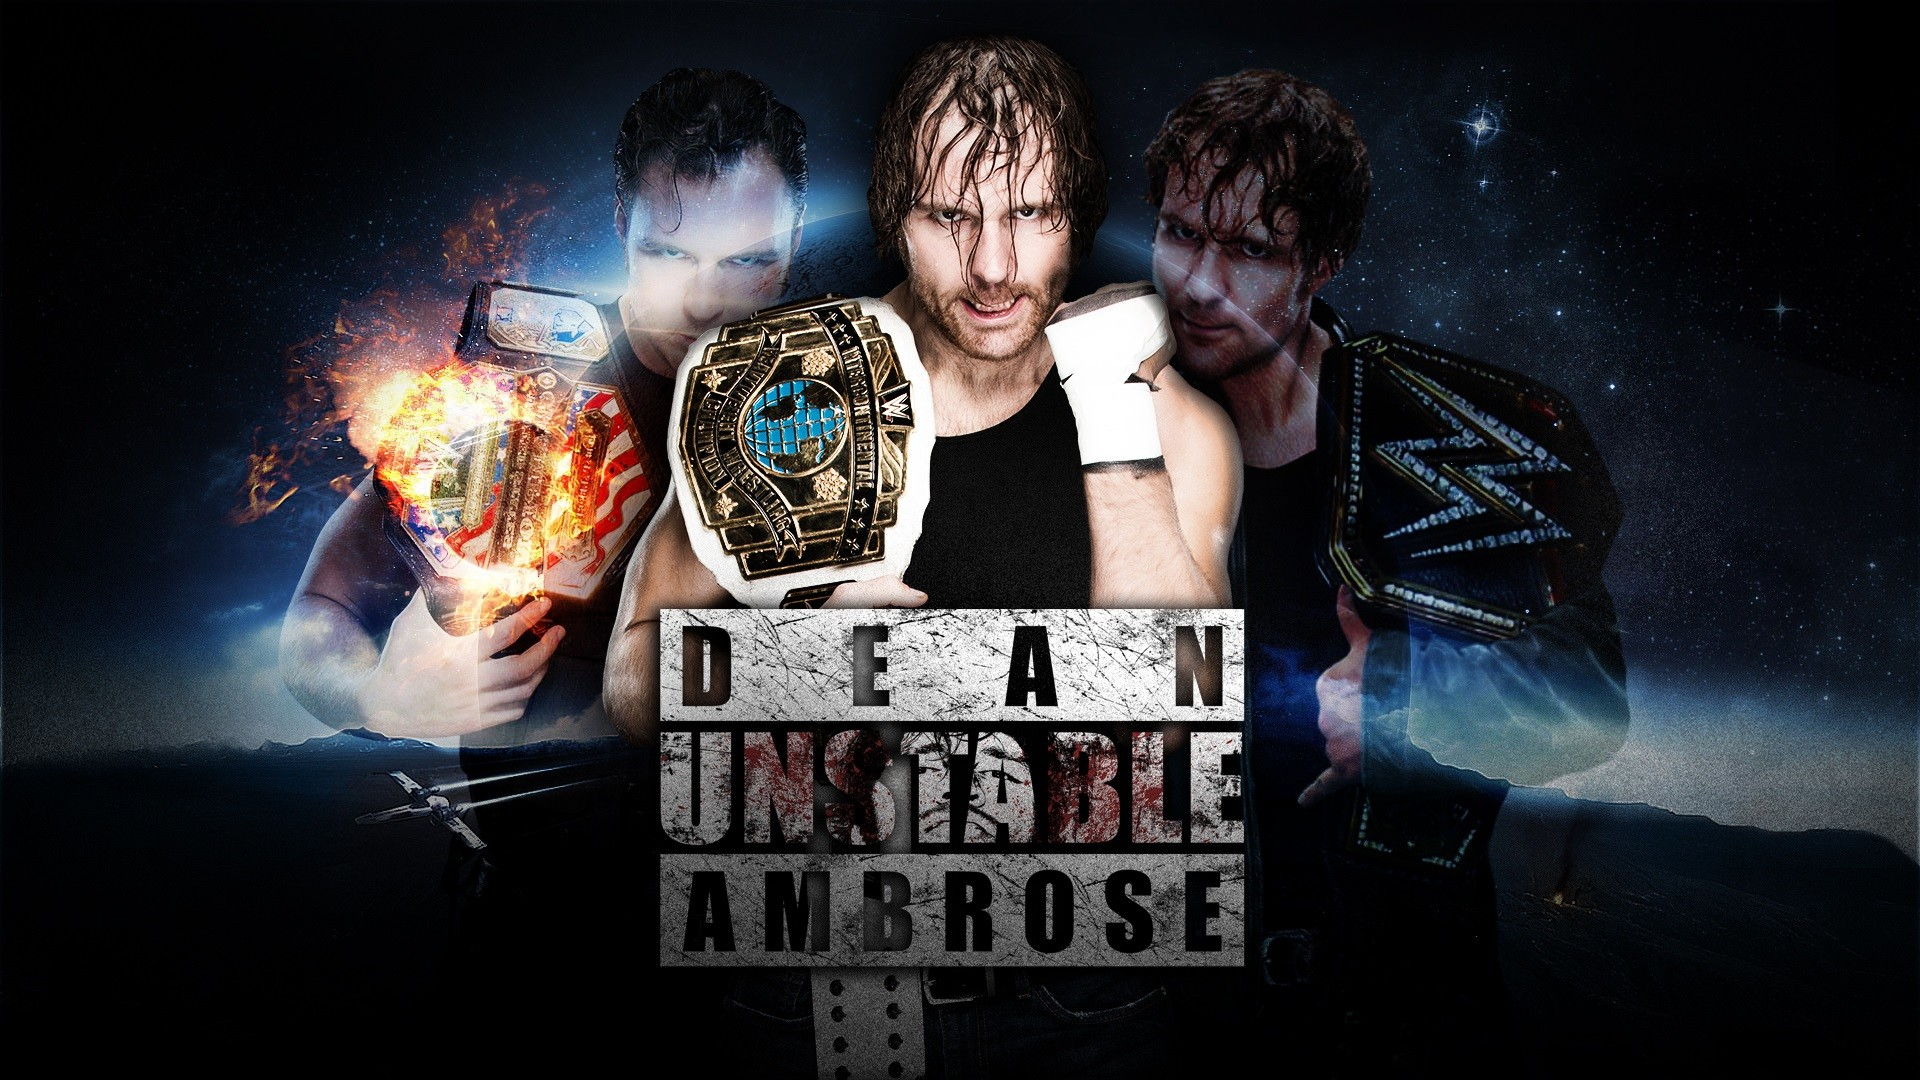 Download Dean Ambrose wallpapers to your cell phone .